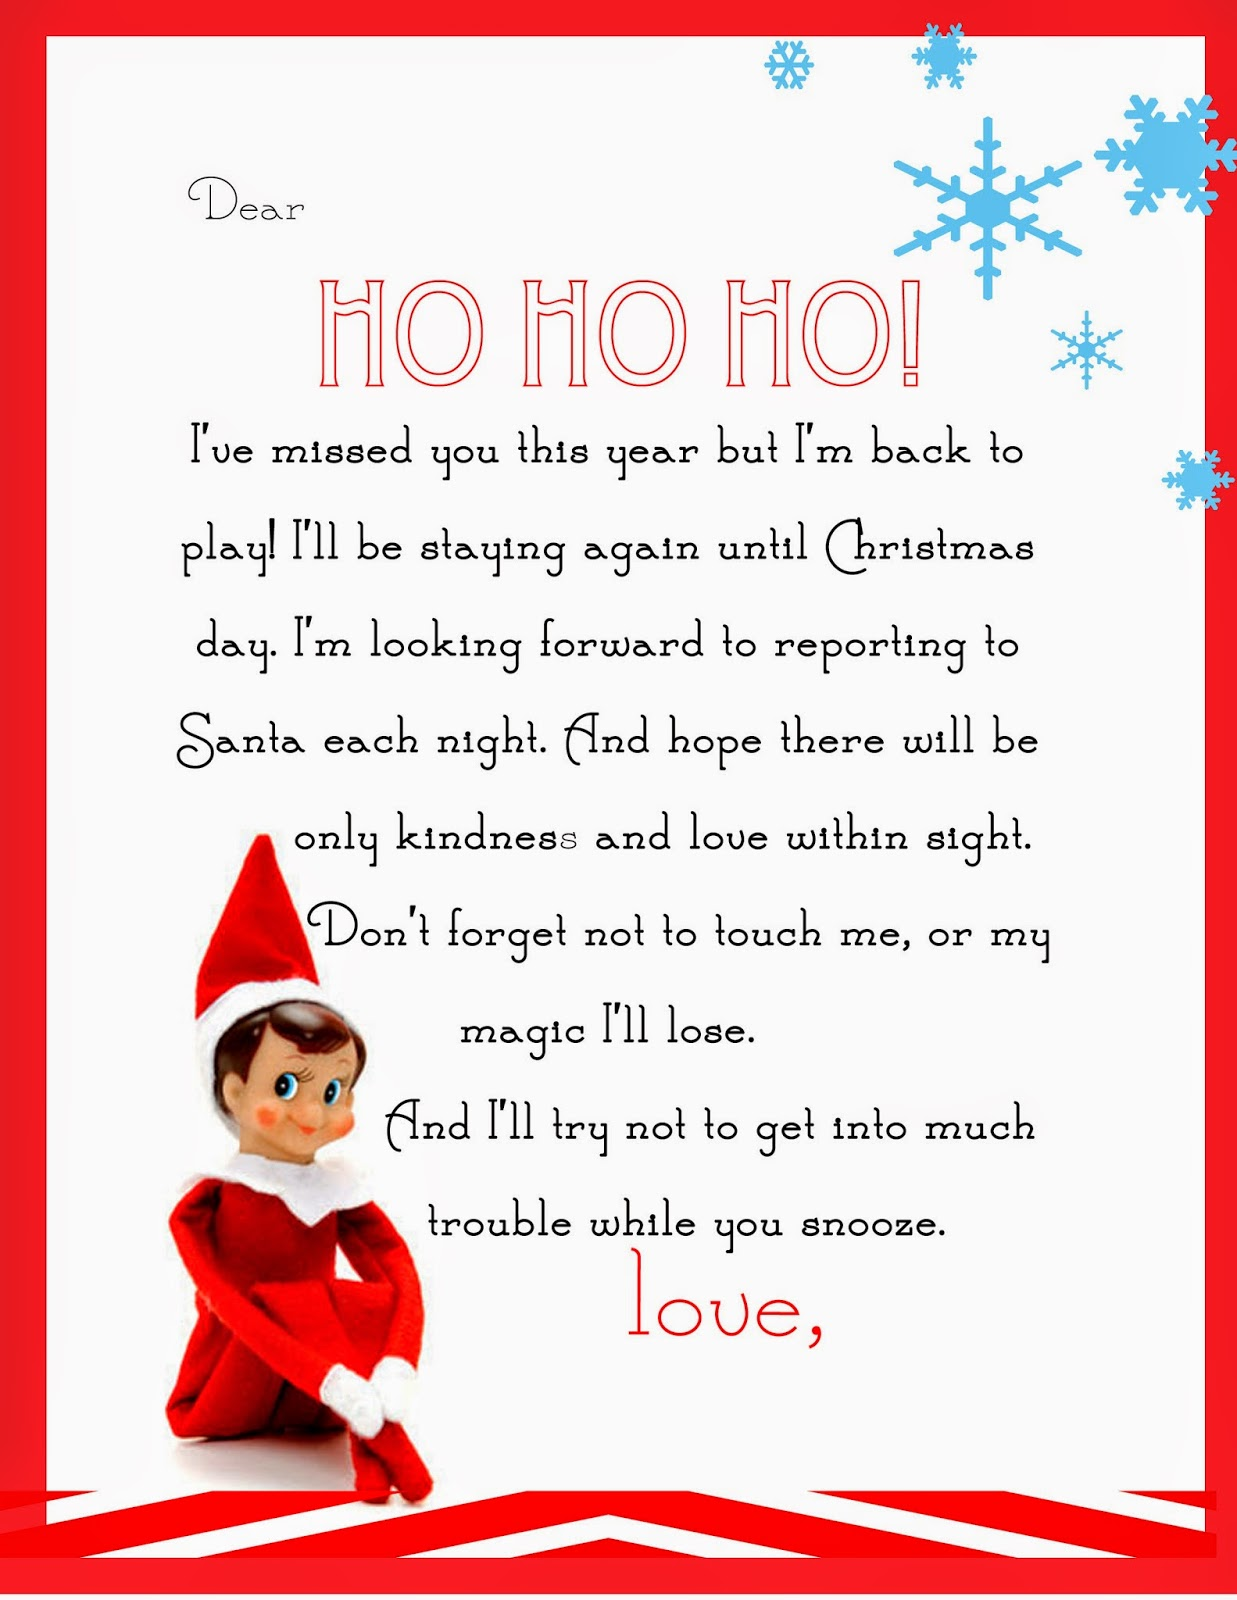 Elf on the shelf letter free printable from Yummy Mummy Kitchen    Letters from Santa Holiday Blog